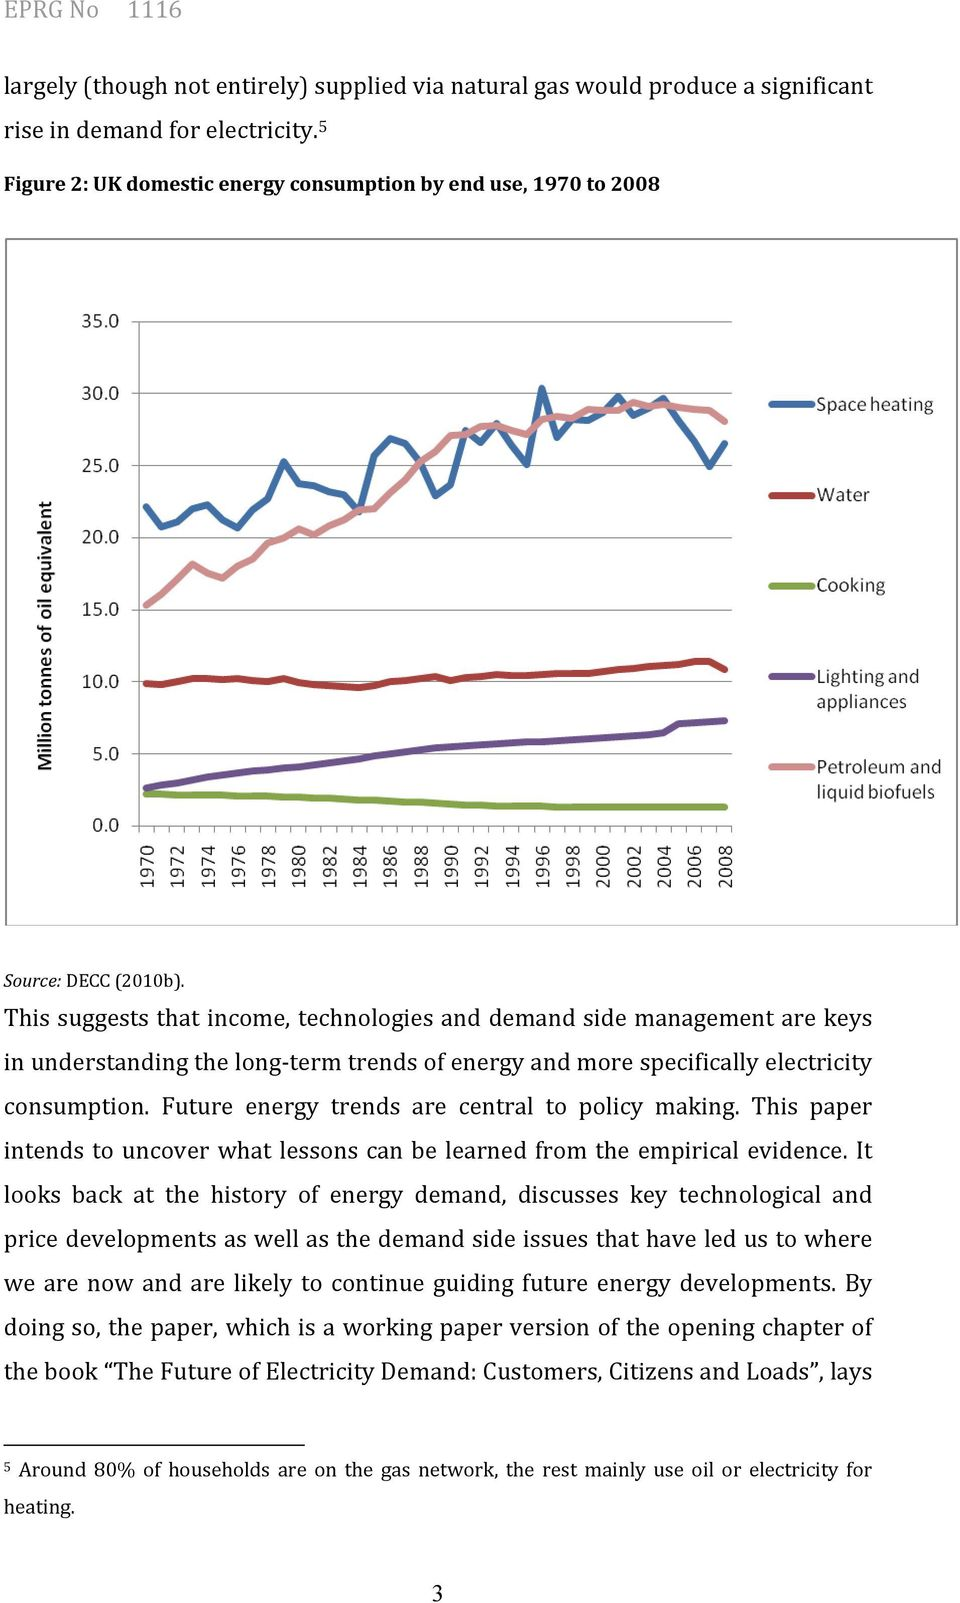 This suggests that income, technologies and demand side management are keys in understanding the long-term trends of energy and more specifically electricity consumption.